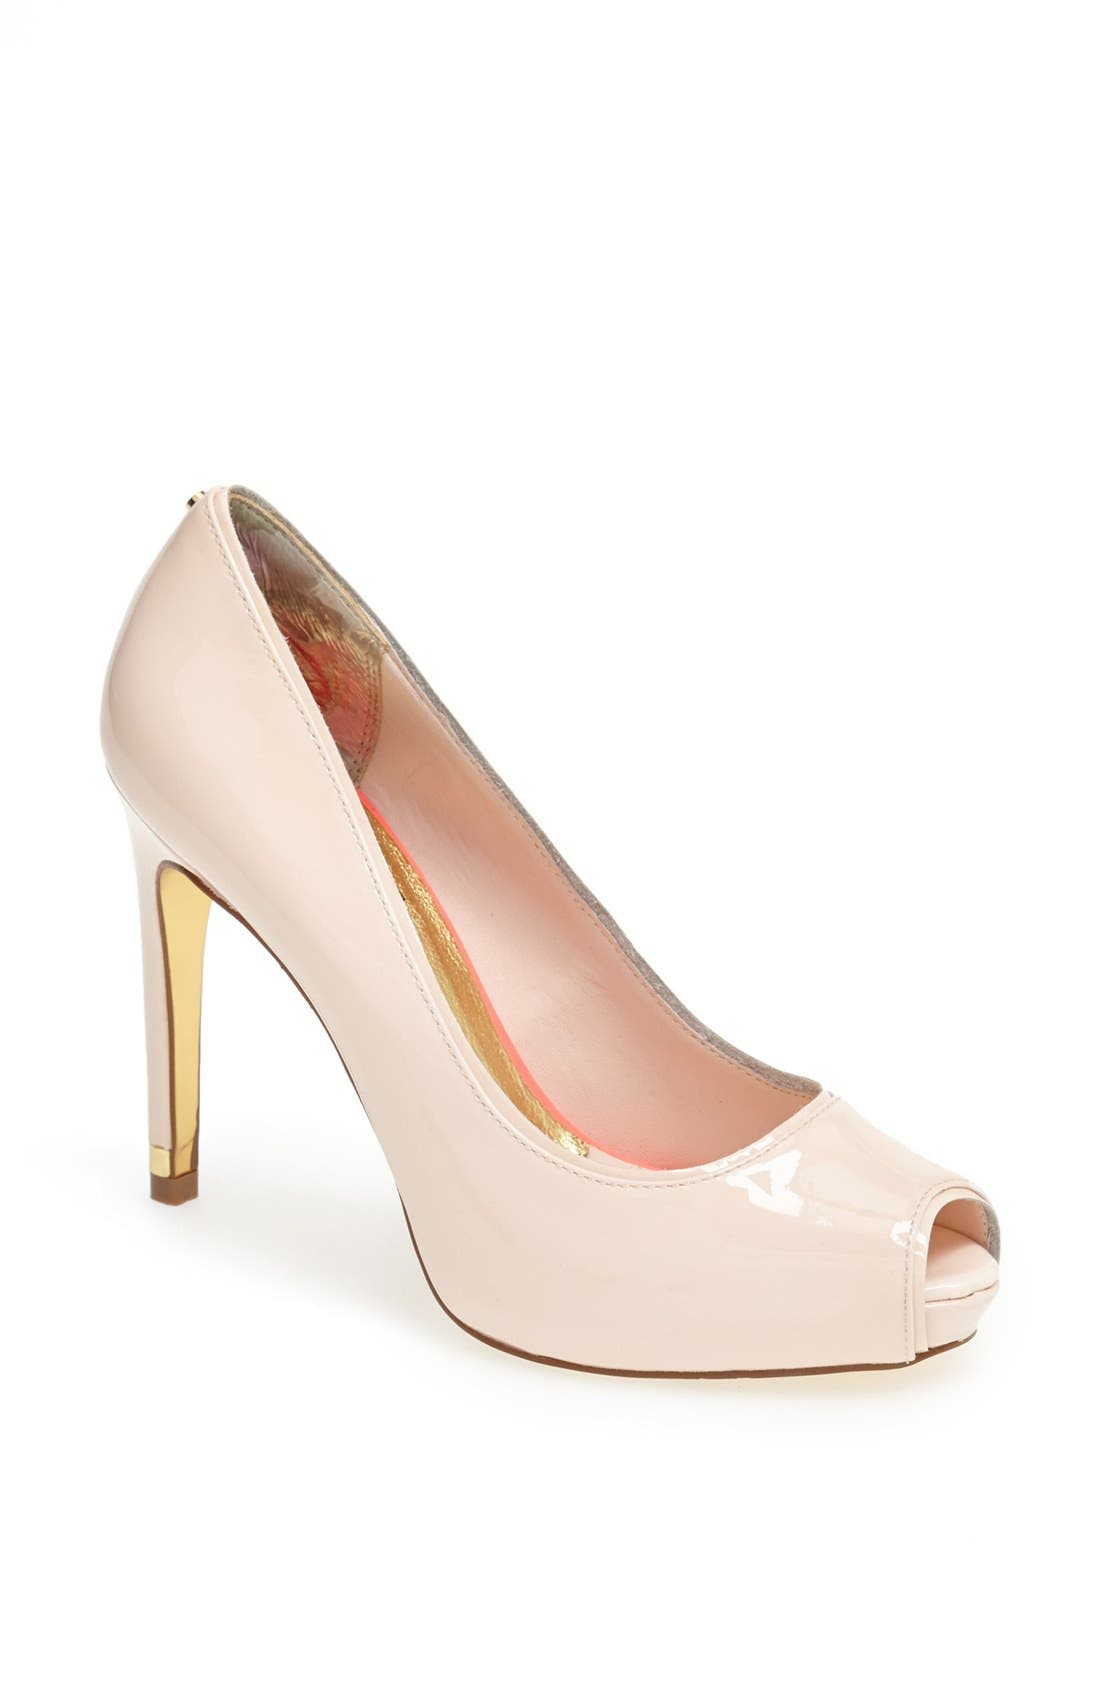 Alternate Image 1 Selected - Ted Baker London 'Glister' Pump